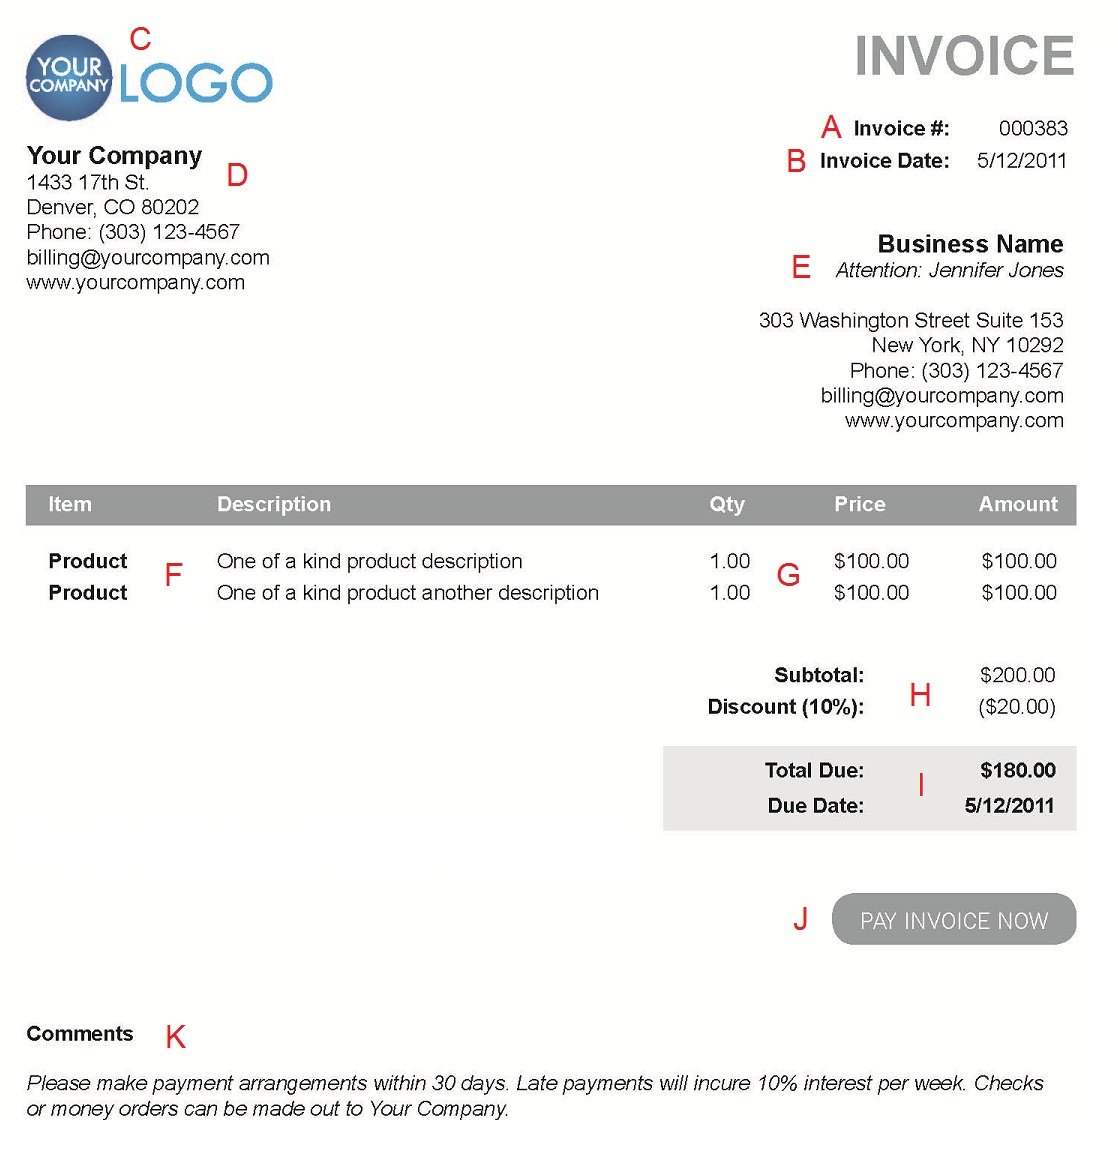 Soulfulpowerus  Mesmerizing The  Different Sections Of An Electronic Payment Invoice With Excellent A  With Astonishing Free Google Invoice Template Also Sample Medical Invoice In Addition International Shipping Invoice And Meaning Of Commercial Invoice As Well As Gst Invoice Additionally Keeping Track Of Invoices From Paysimplecom With Soulfulpowerus  Excellent The  Different Sections Of An Electronic Payment Invoice With Astonishing A  And Mesmerizing Free Google Invoice Template Also Sample Medical Invoice In Addition International Shipping Invoice From Paysimplecom